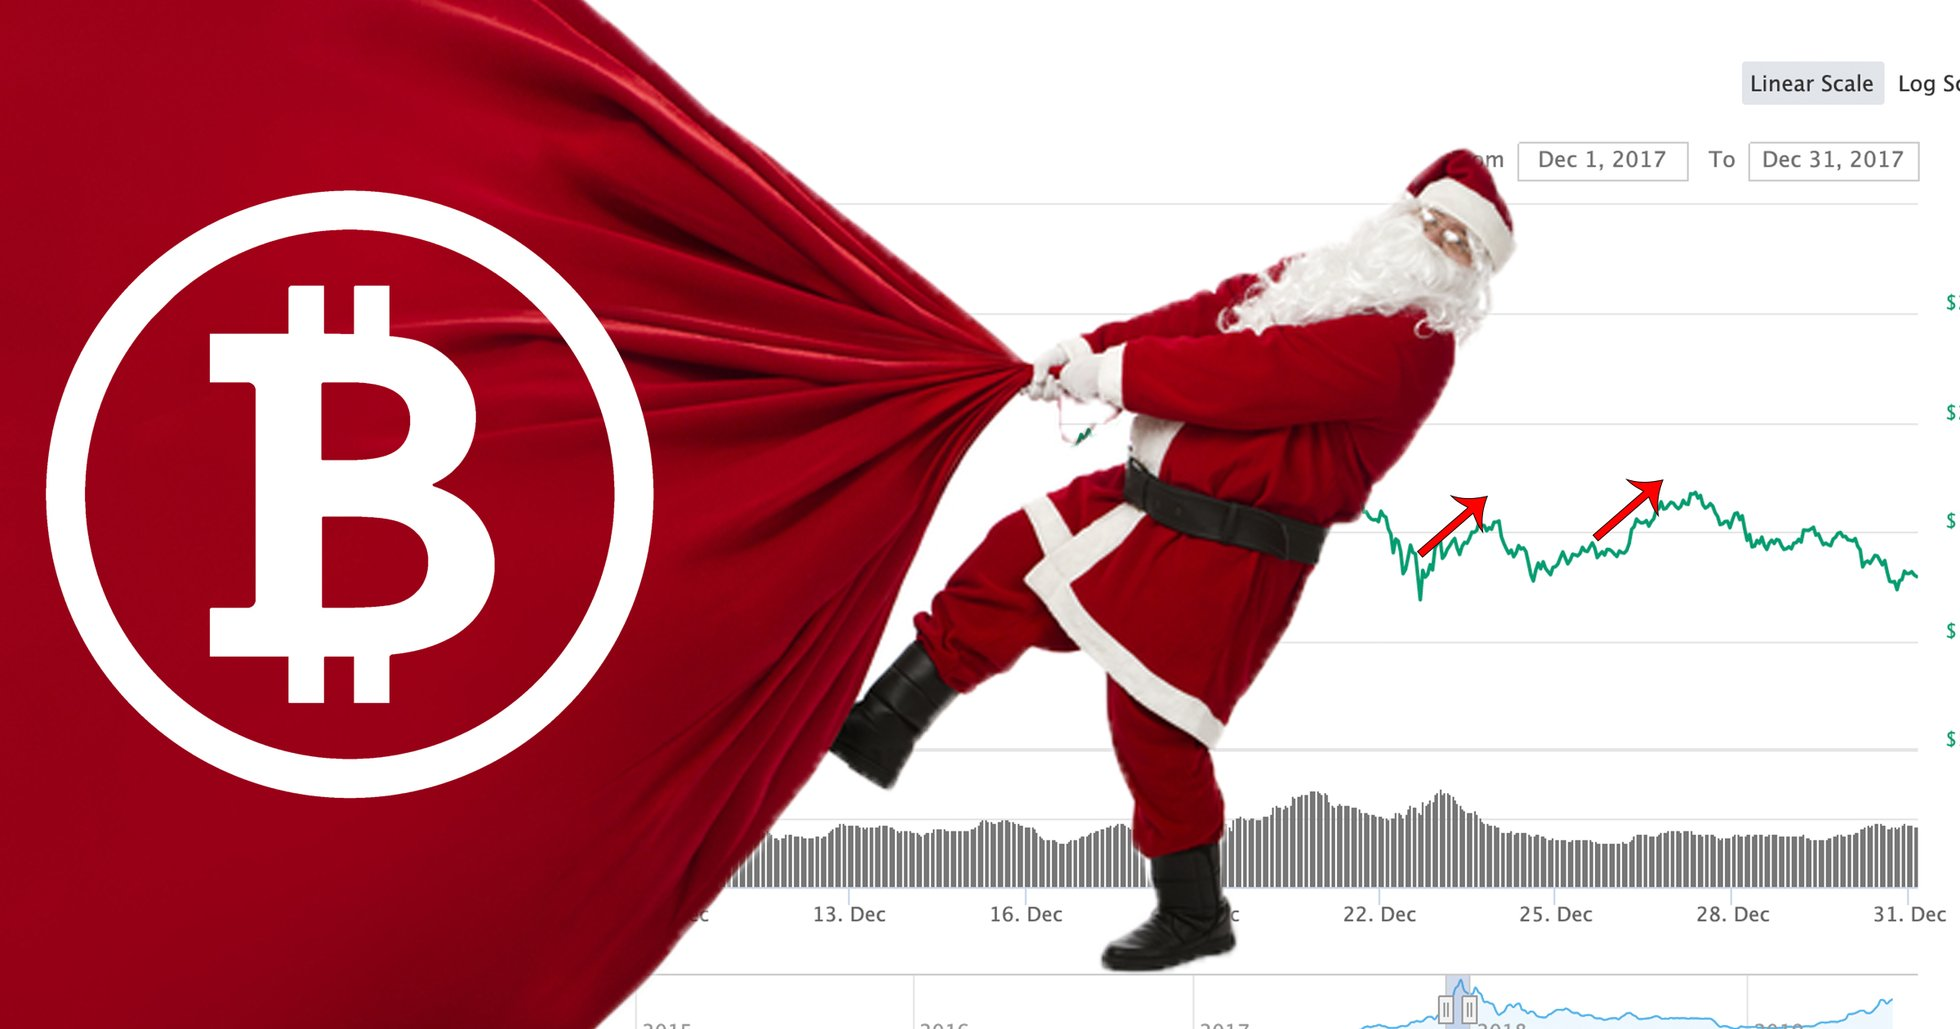 New study reveals: Bitcoin's price rise over the holidays